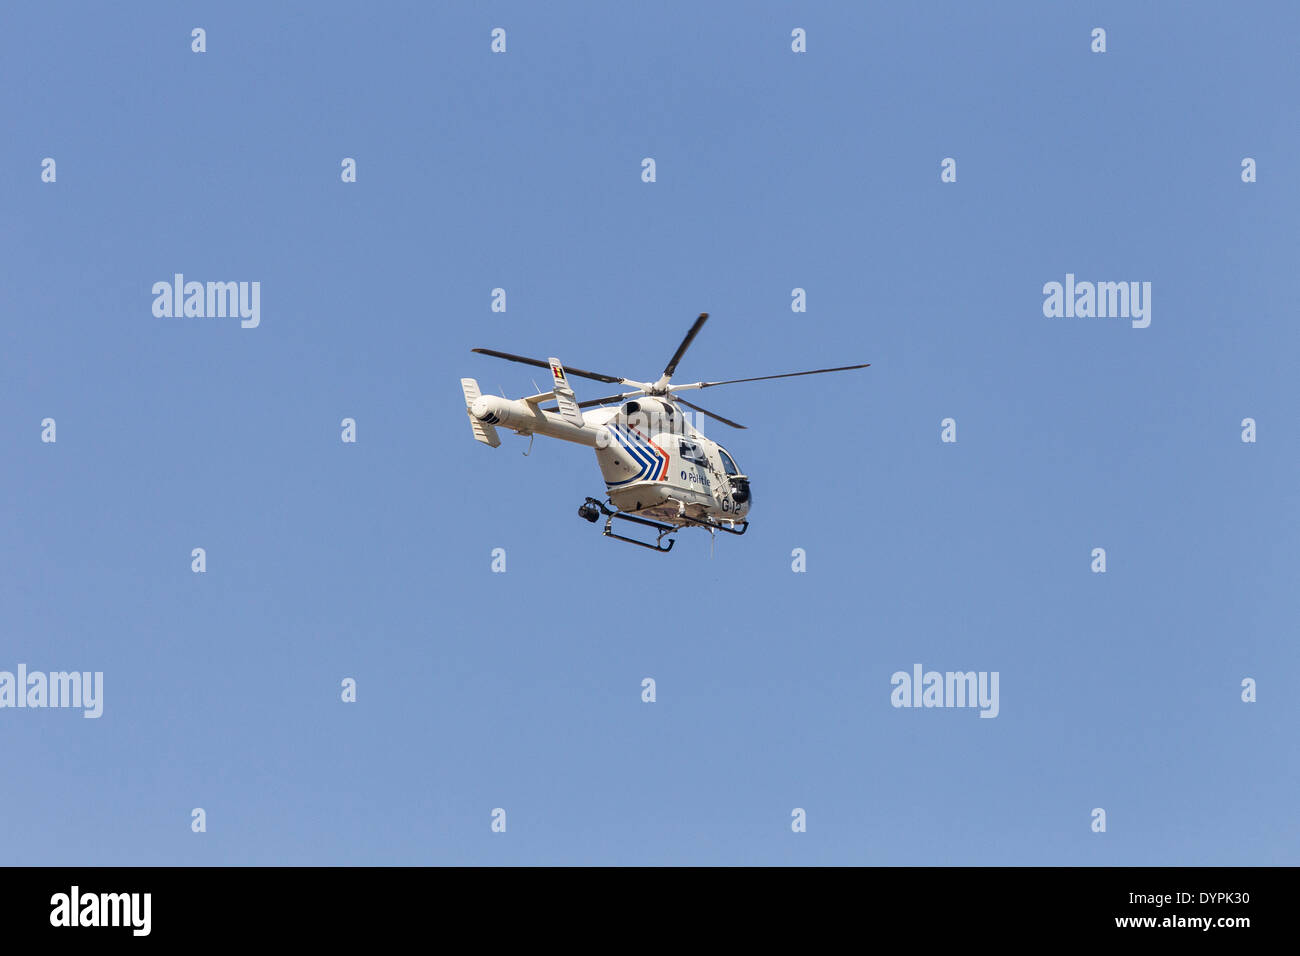 MD 900 Explorer belgian police helicopter - Stock Image